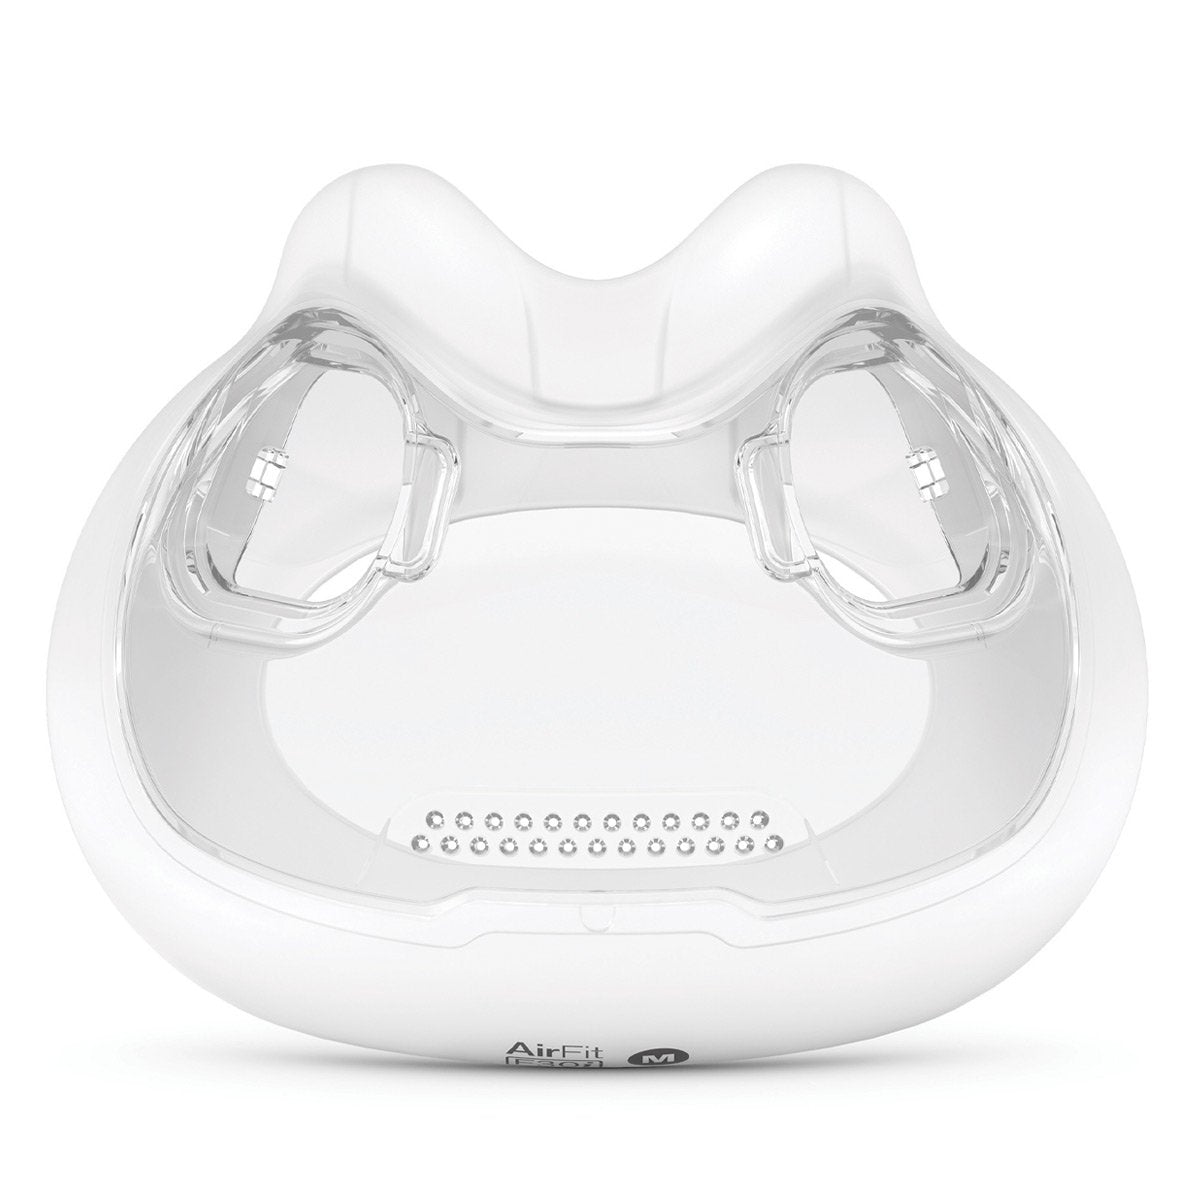 Front view of clear AirFit F30i Cushion by ResMed